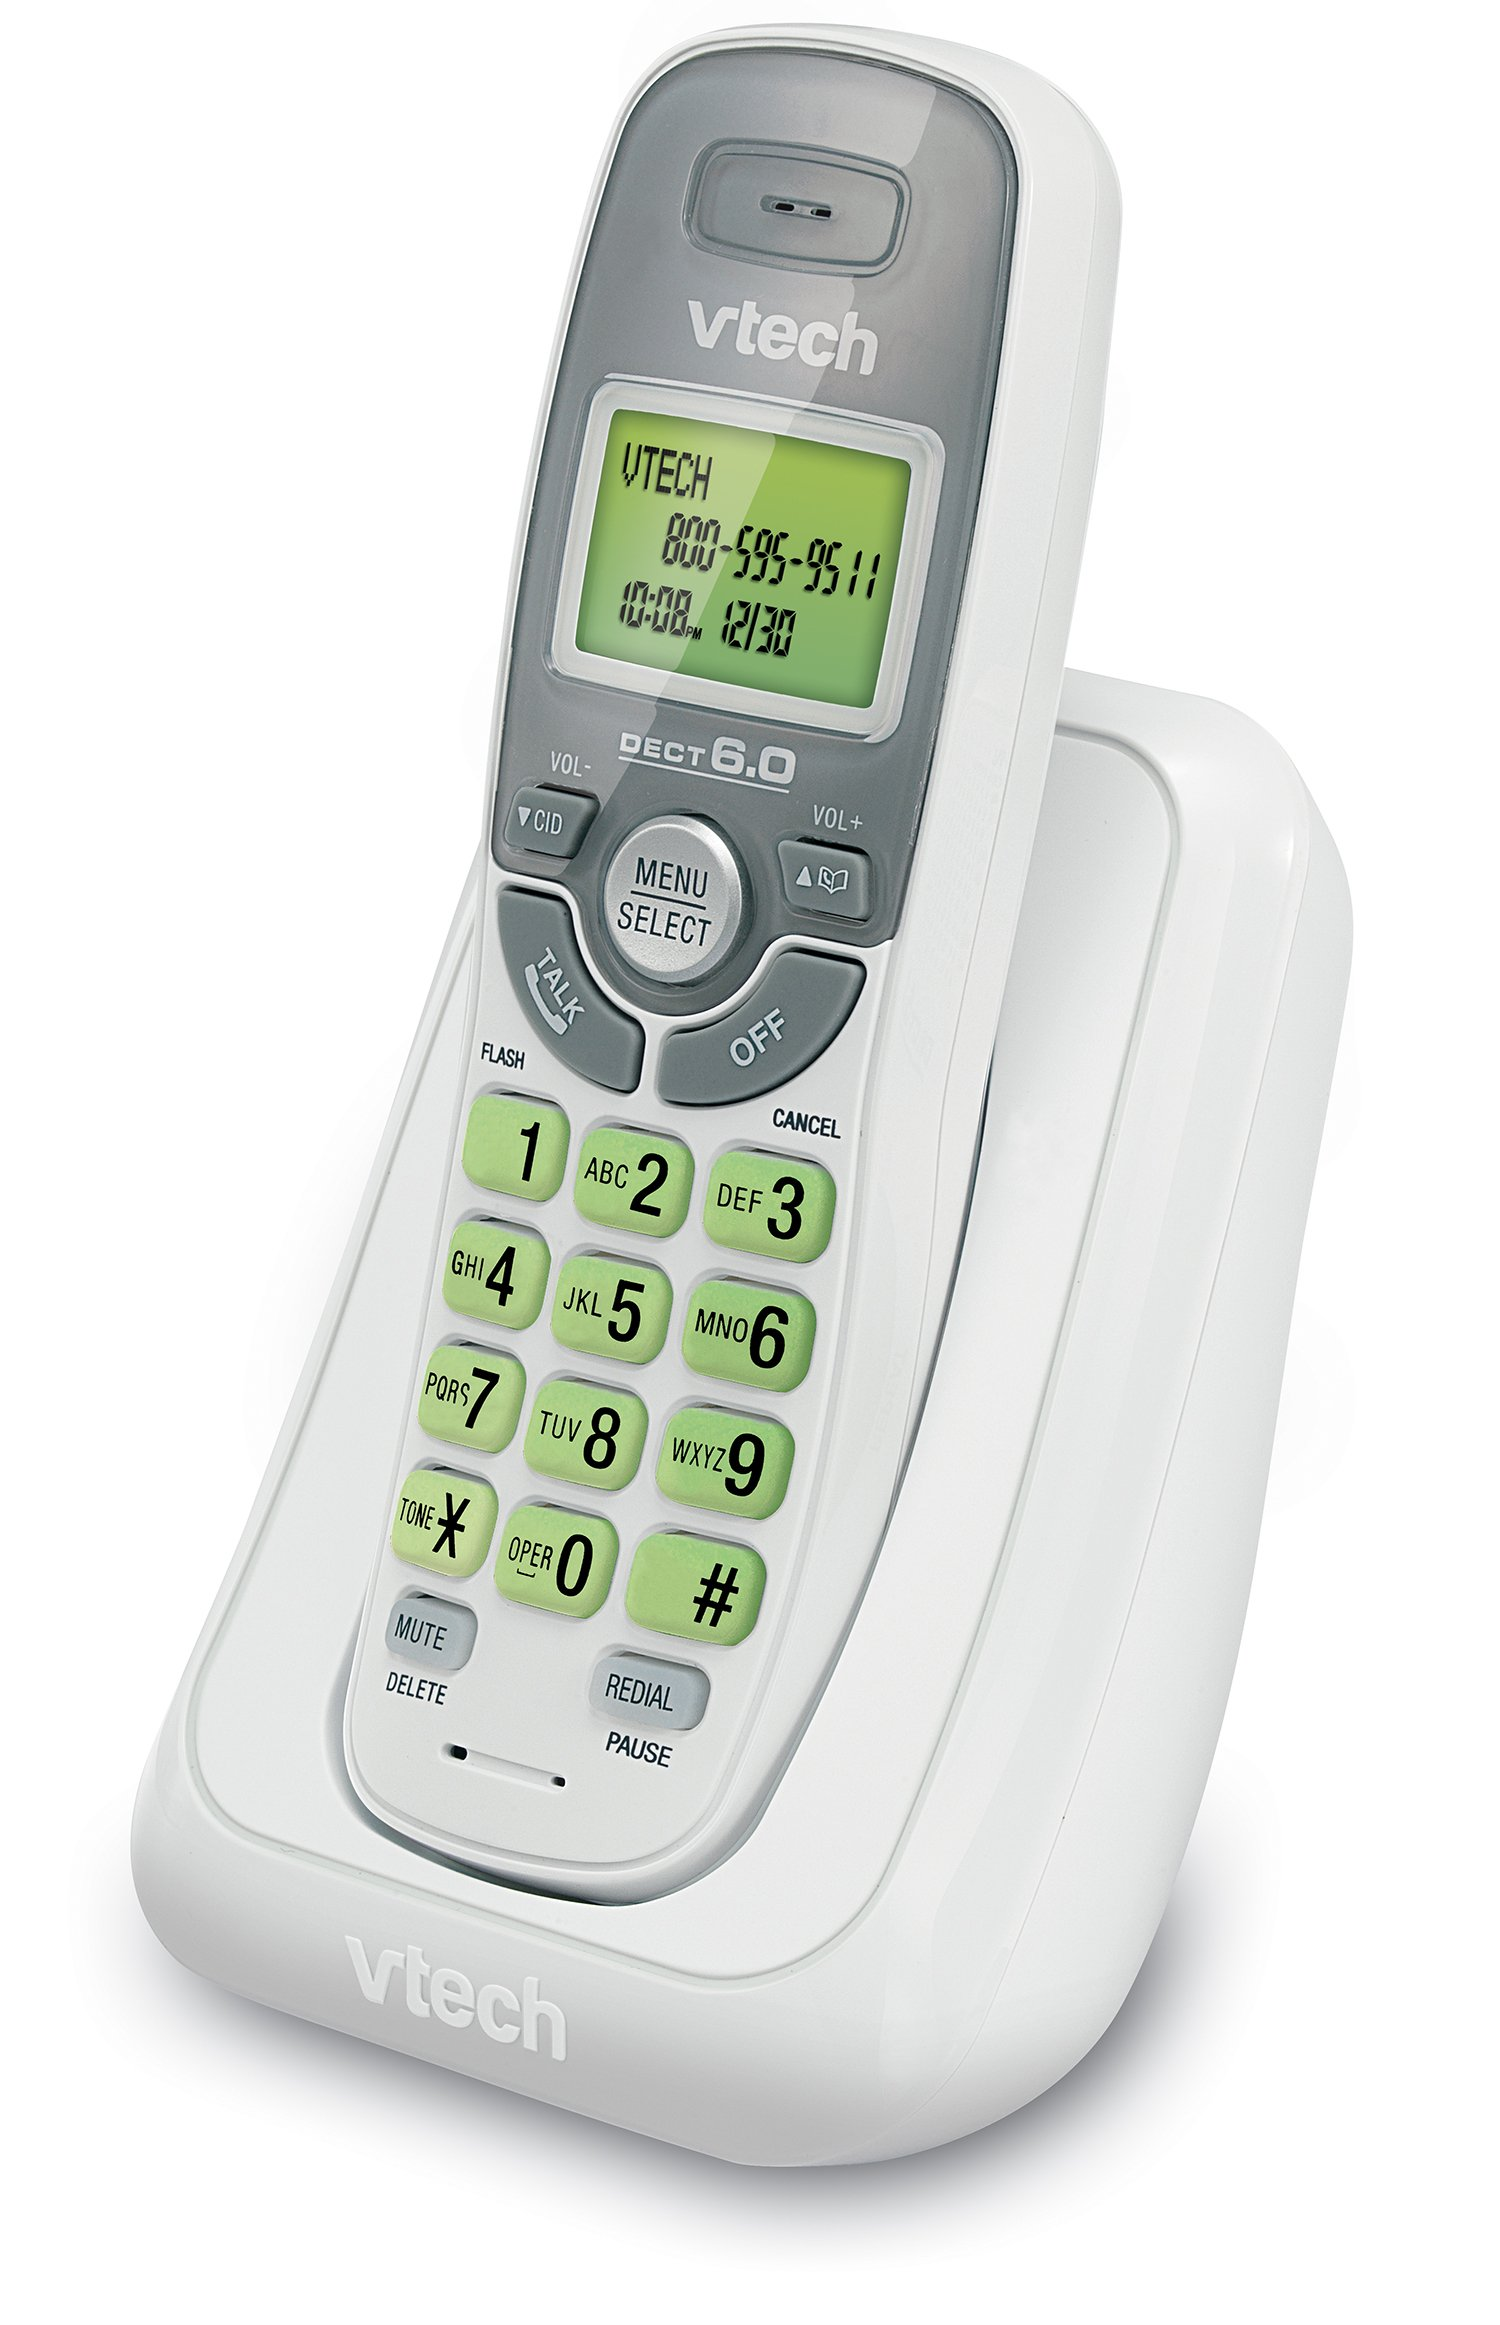 VTech CS6114 DECT 6.0 Cordless Phone with Caller ID/Call Waiting, White/Grey with 1 Handset by VTech